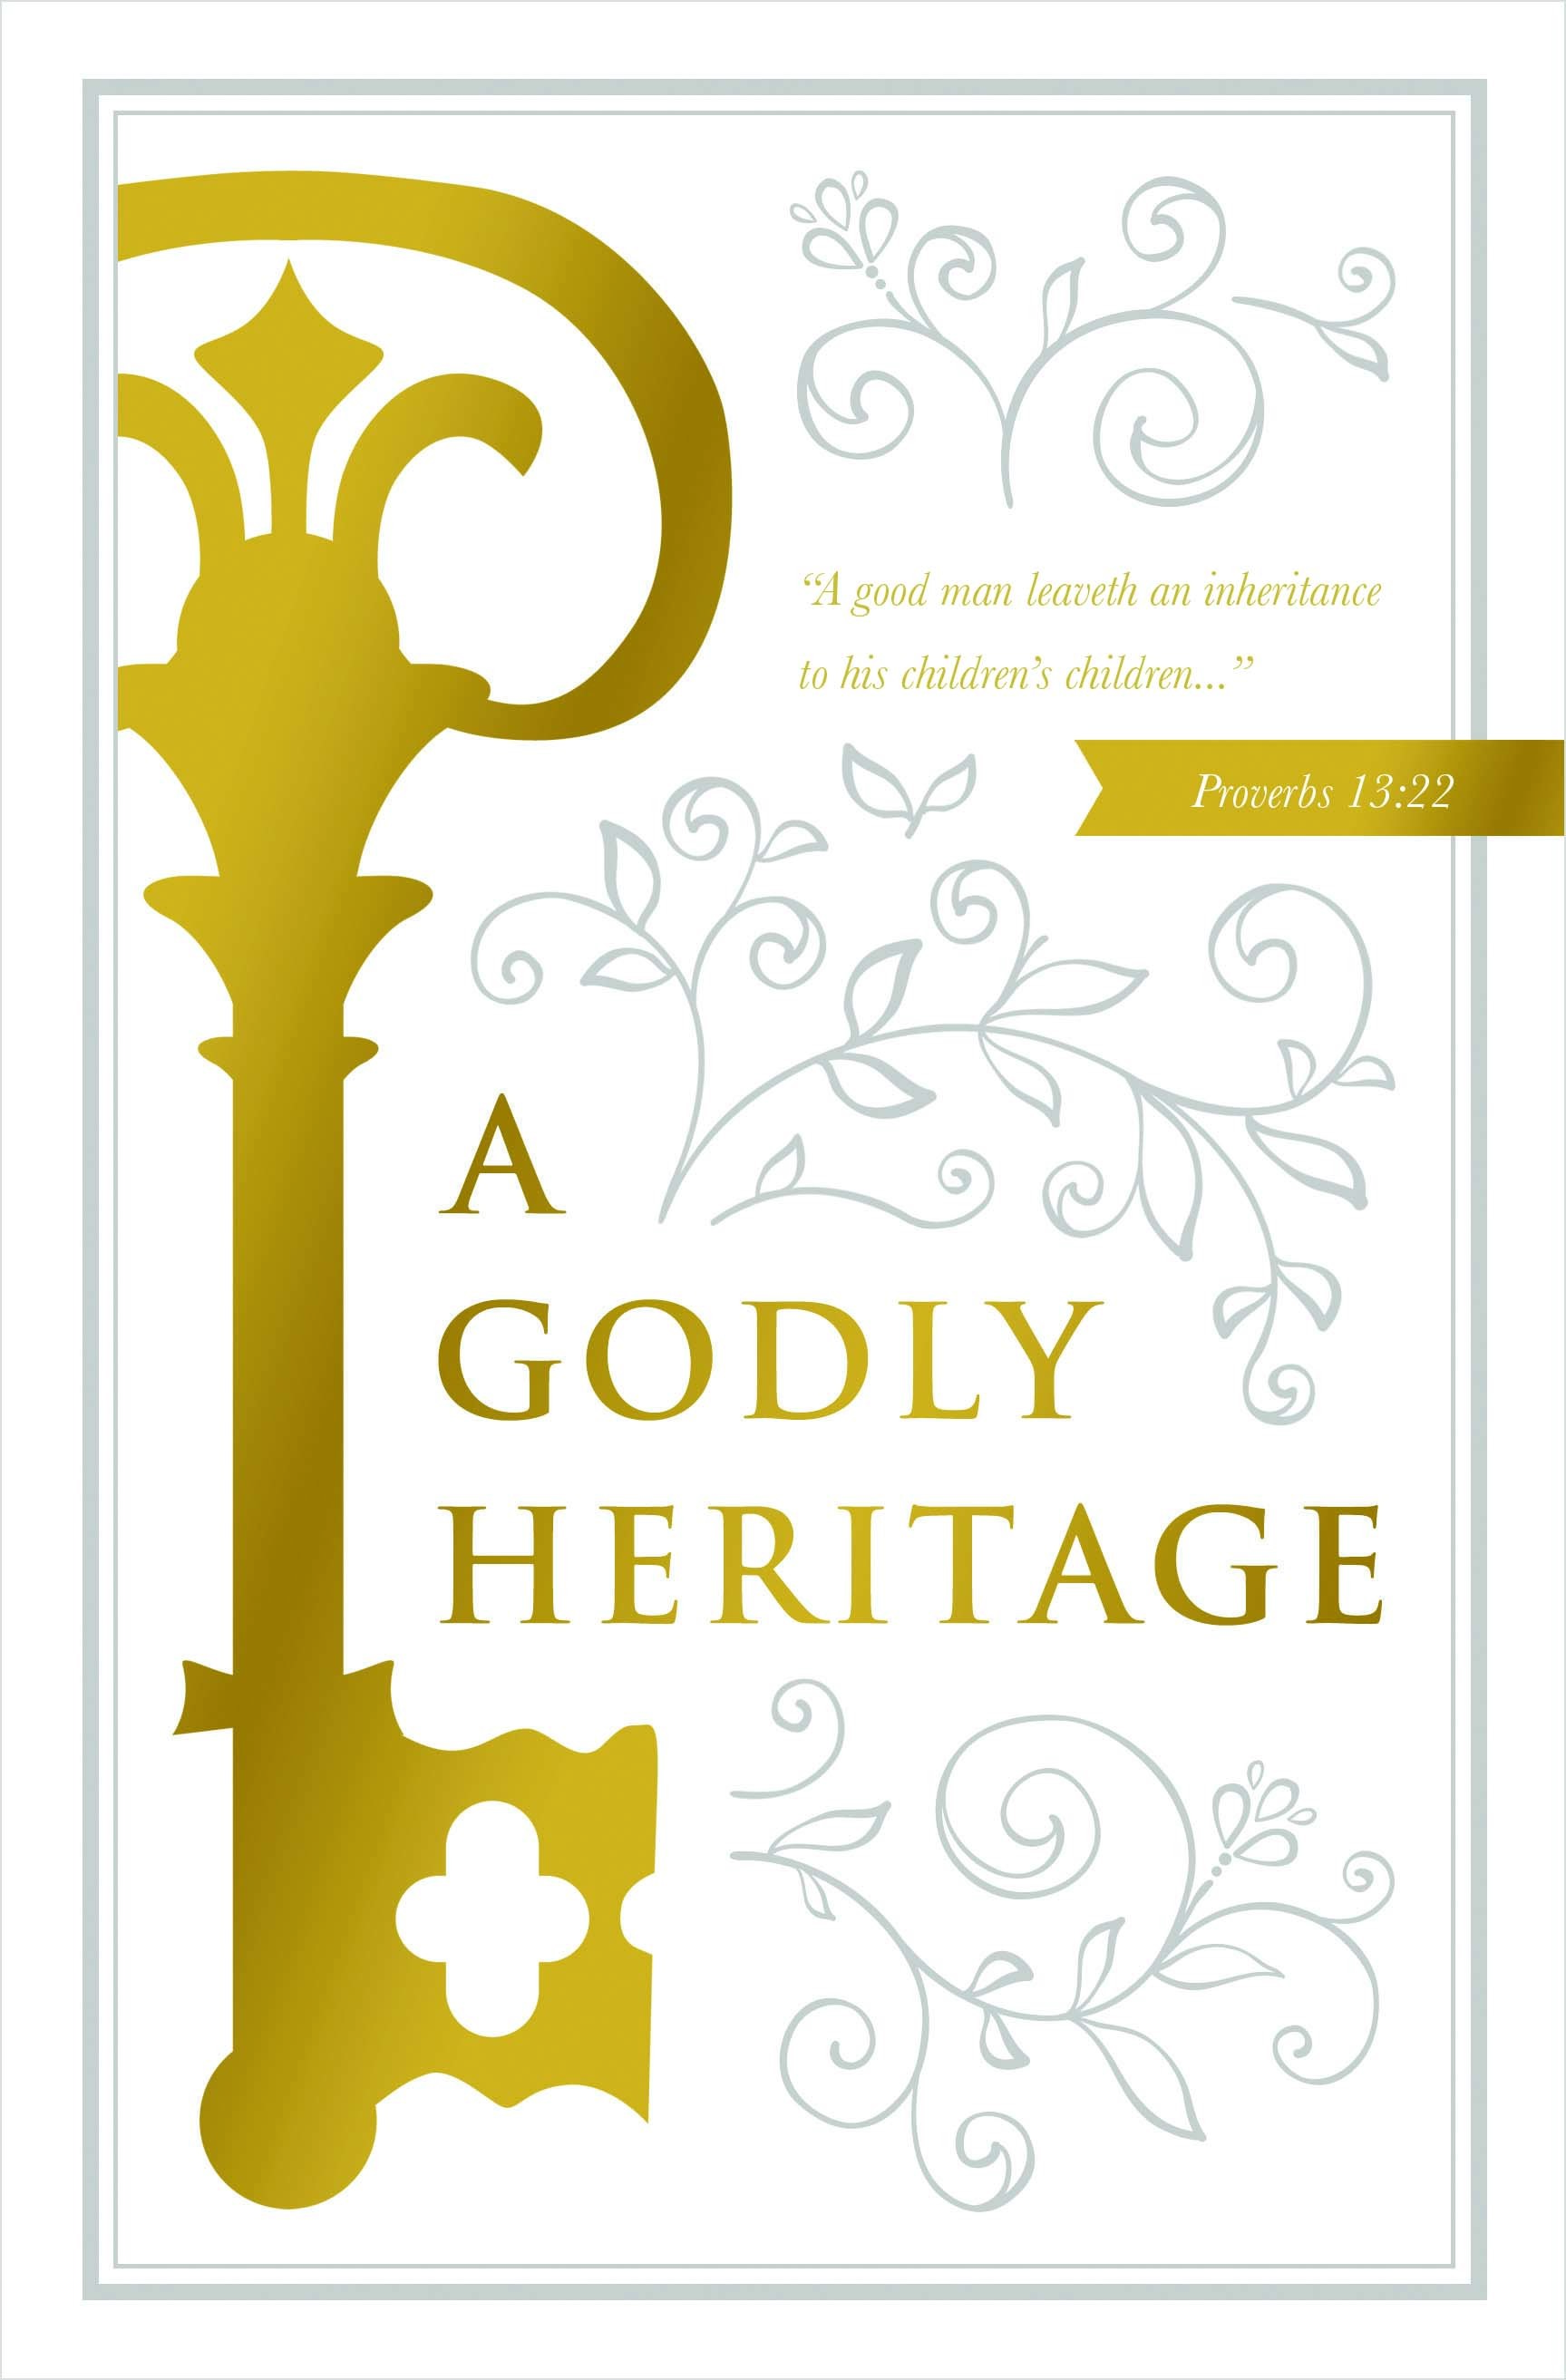 A Godly Heritage.